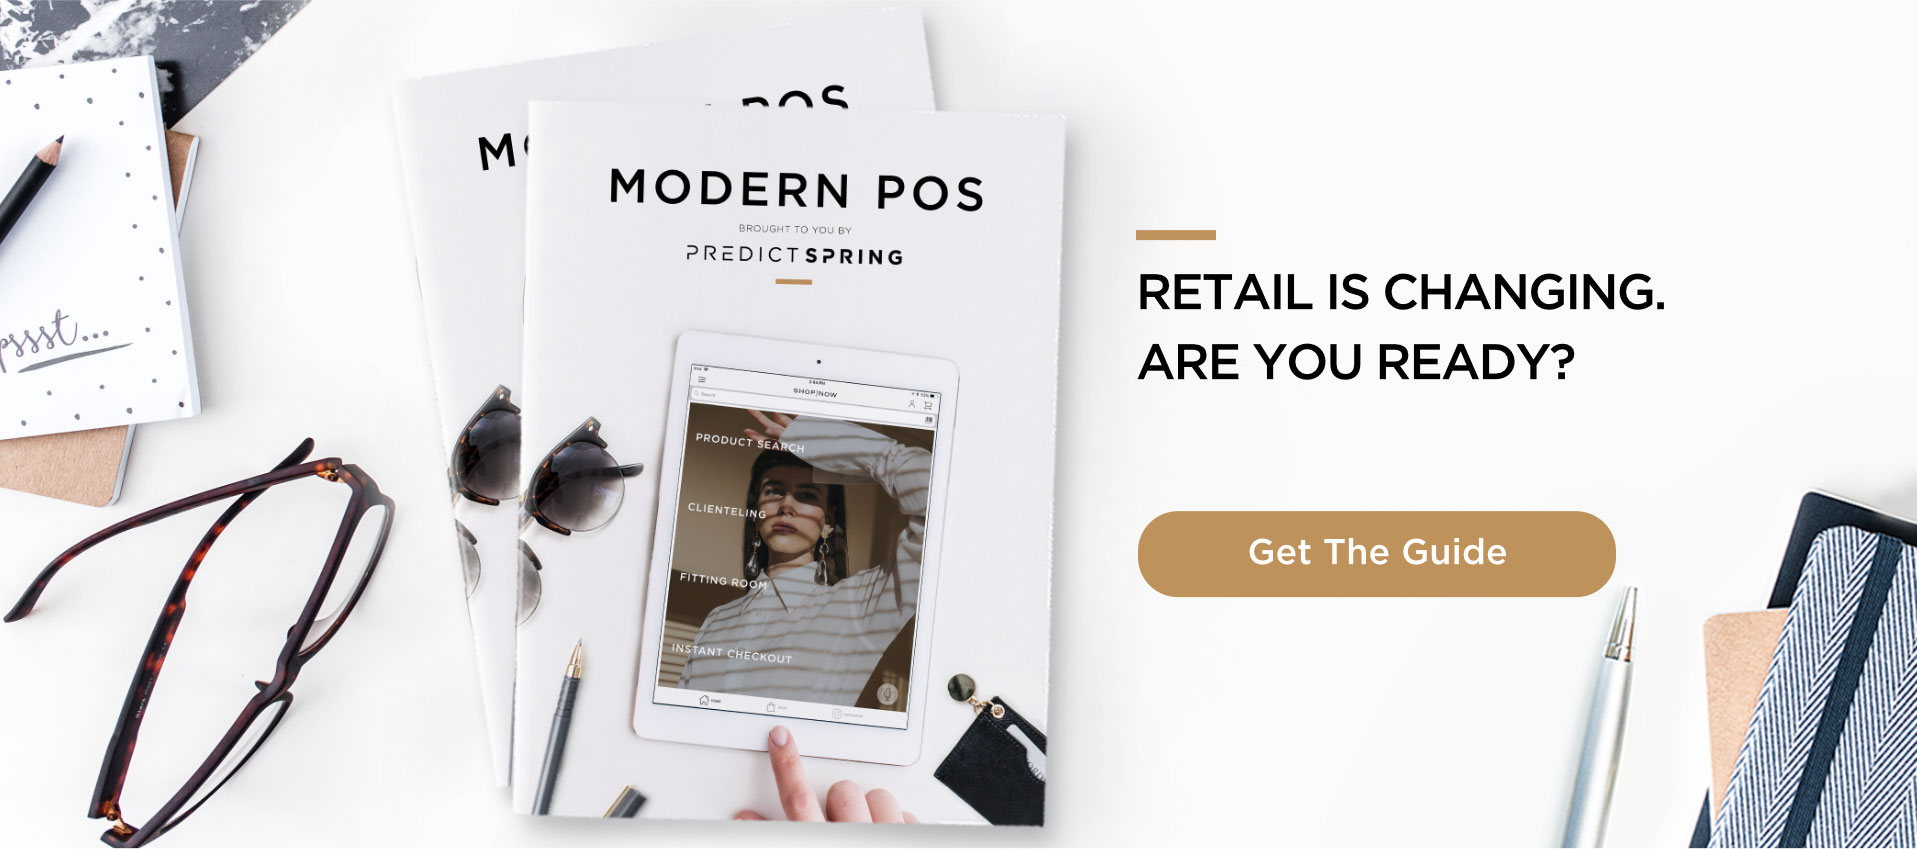 Retail Is Changing. Are You Ready? Modern POS. Get The Guide